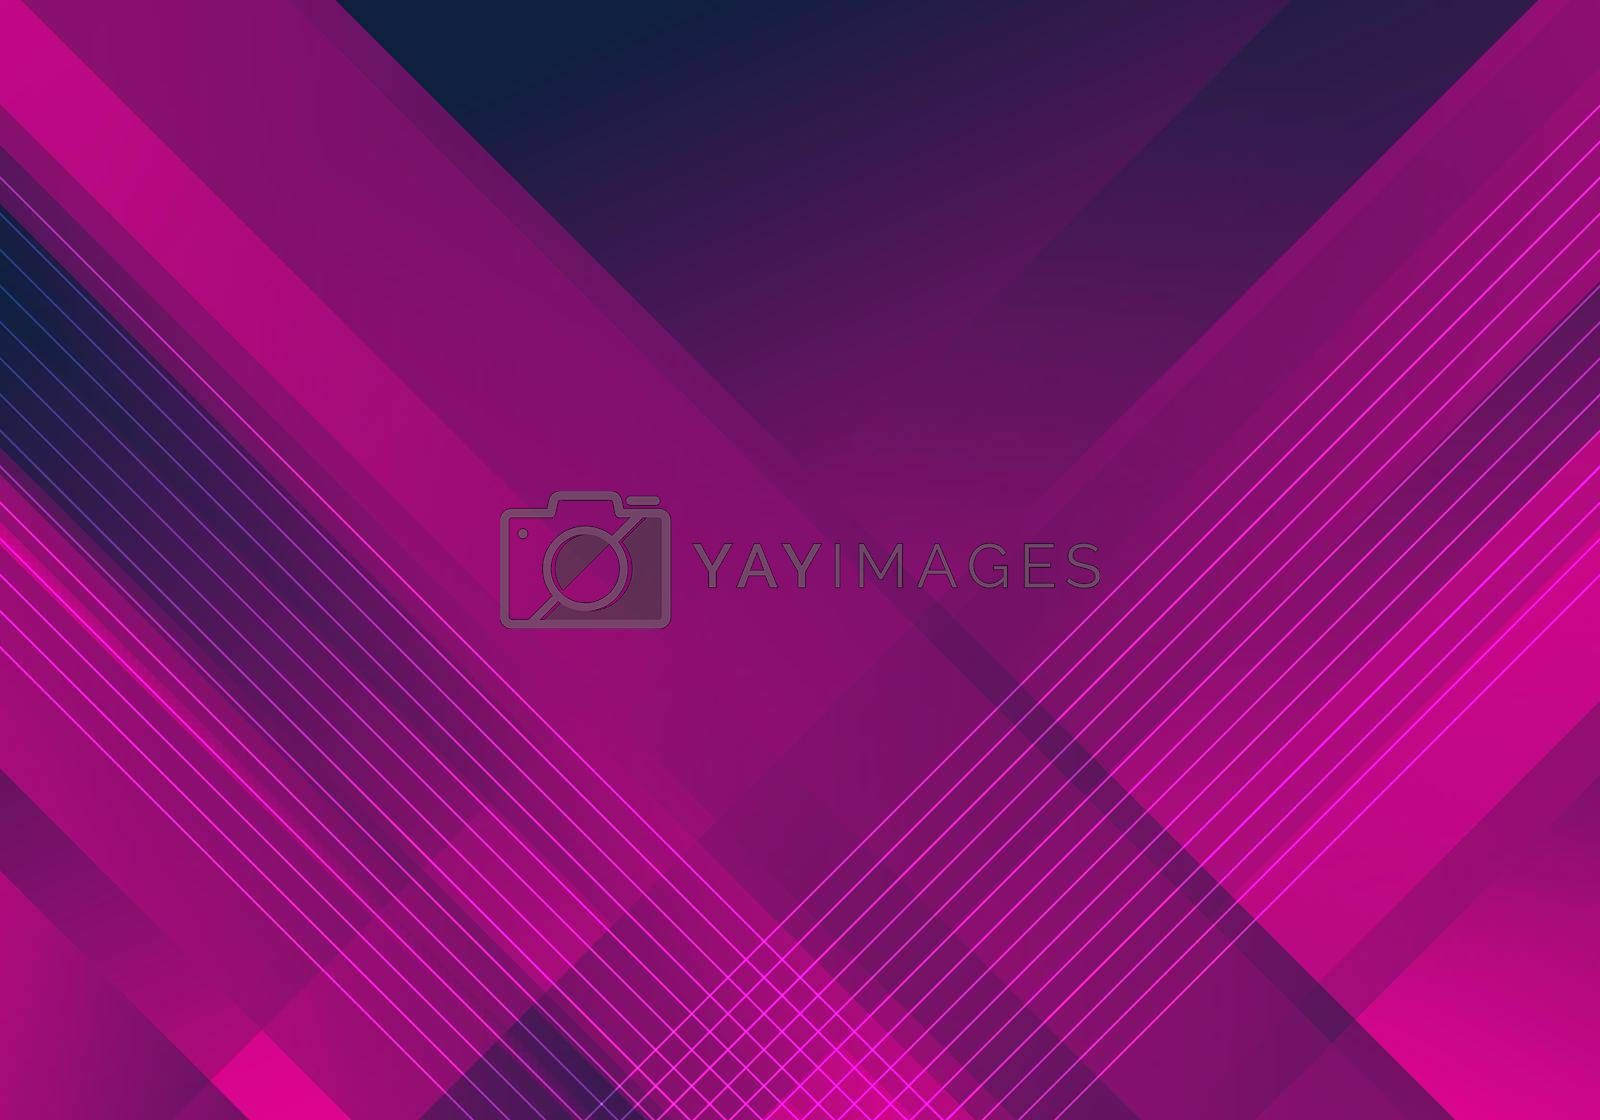 Royalty free image of Abstract pink and blue diagonal stripes line gradient shapes background and texture by phochi